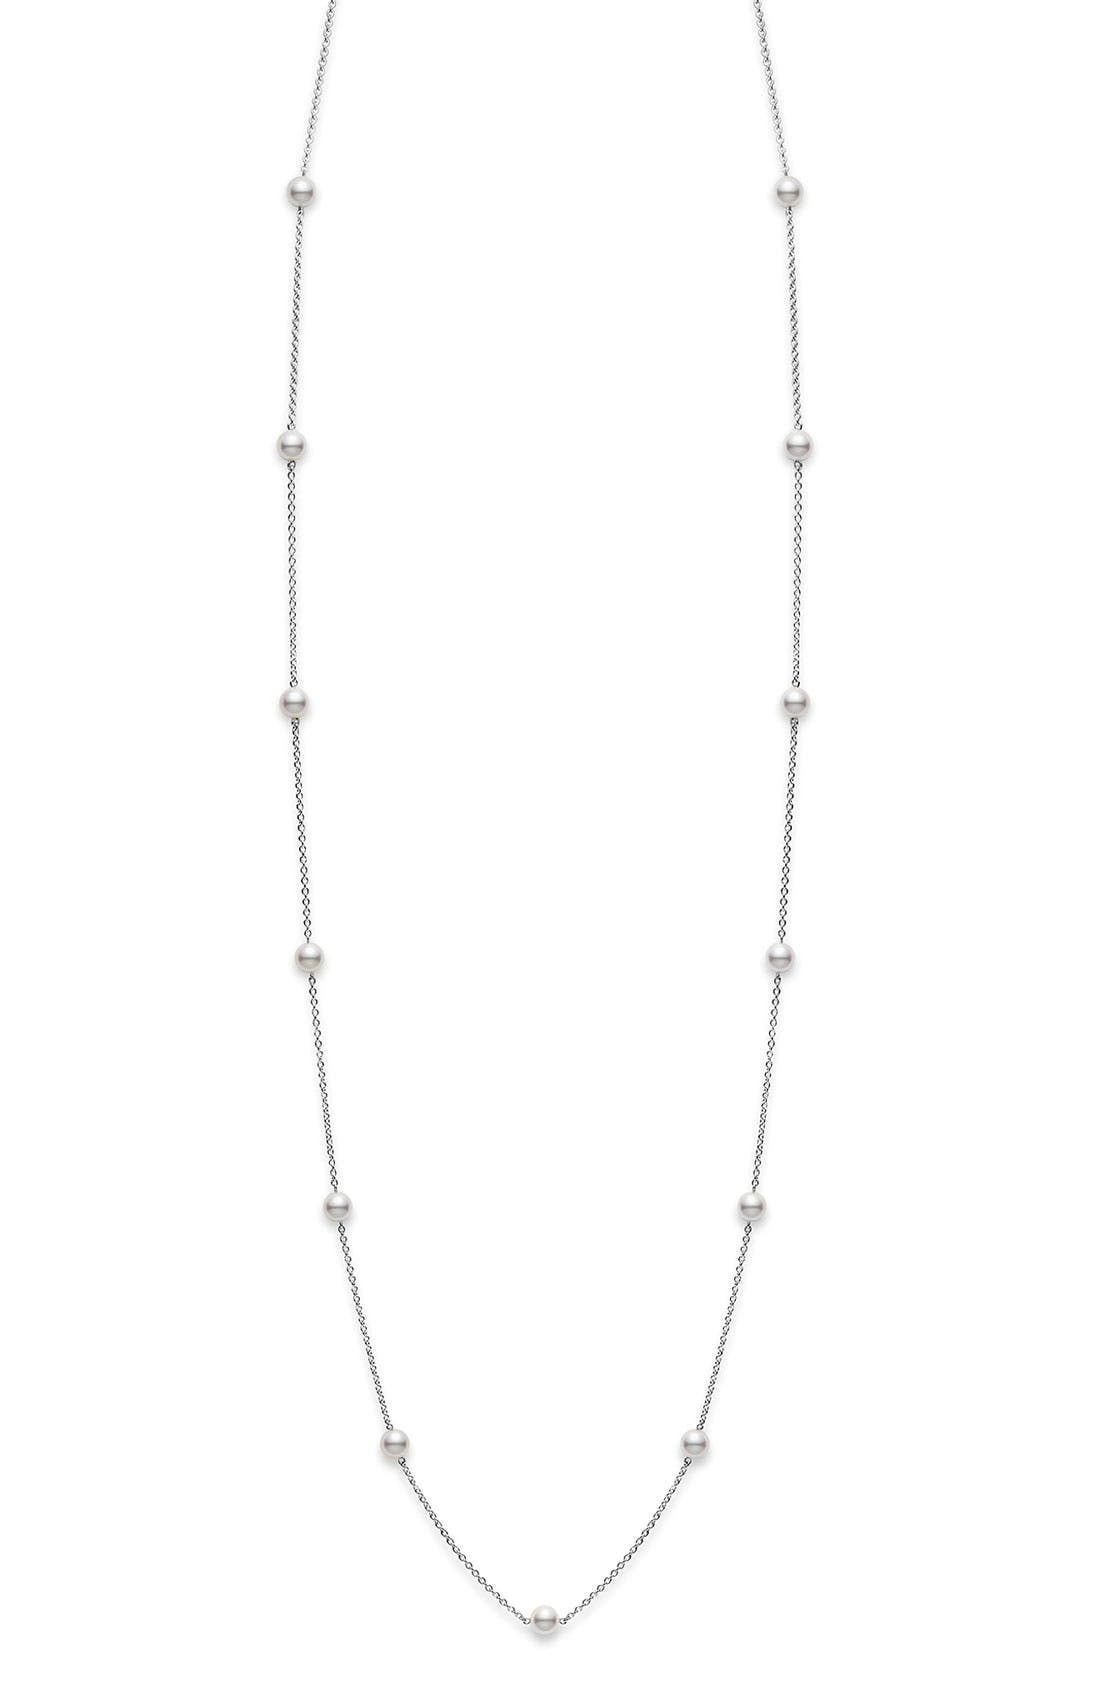 Main Image - Mikimoto Akoya Pearl Station Necklace